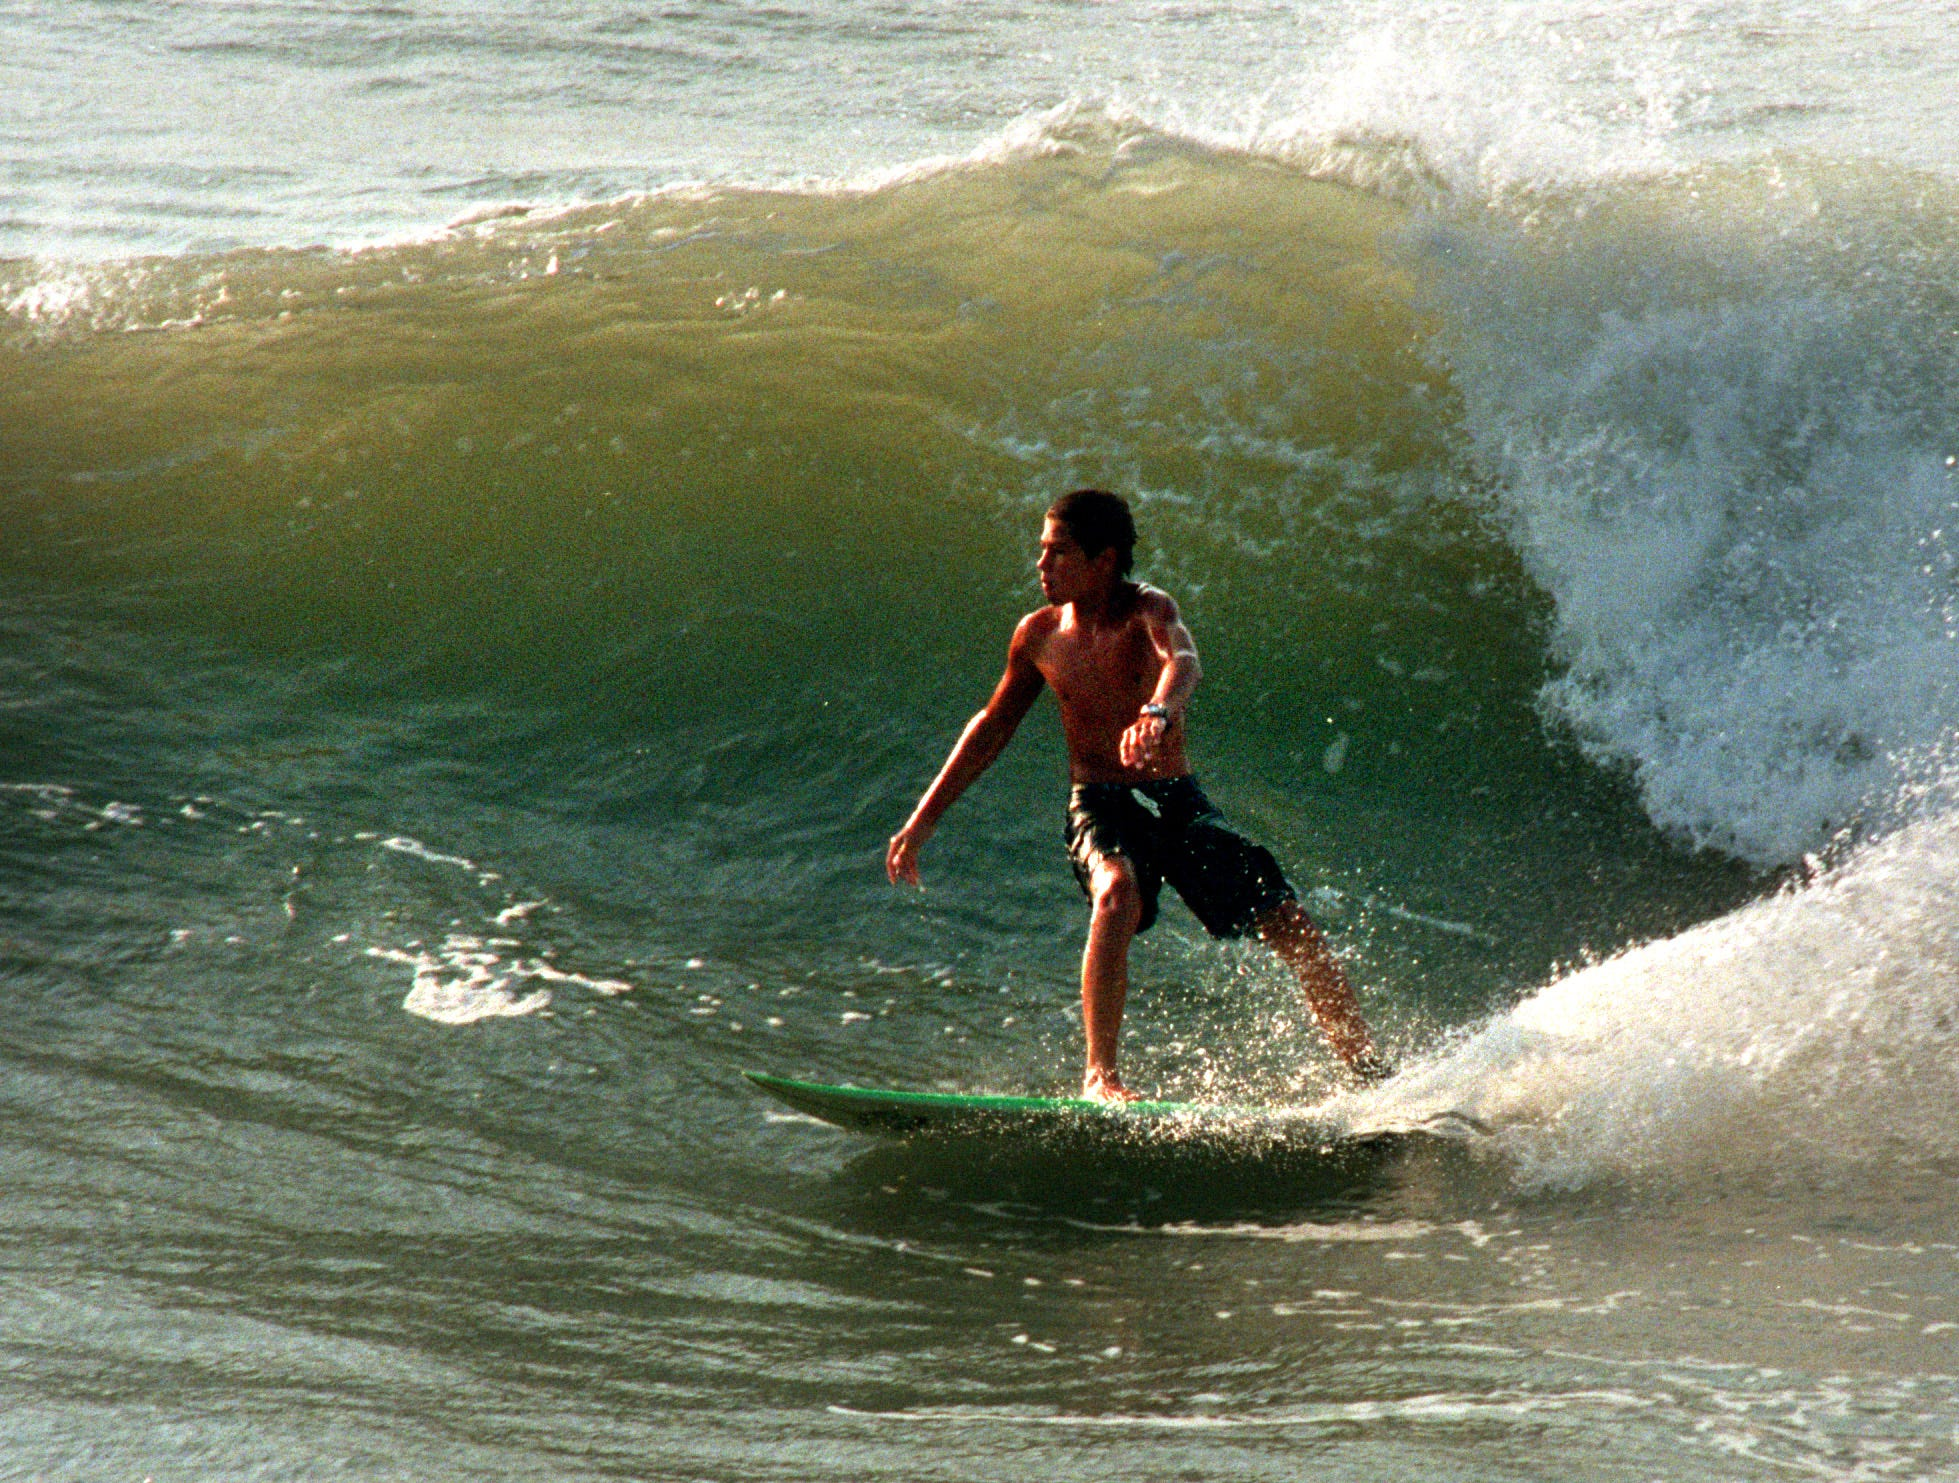 Matt Richter, 13, of Port Aransas, surfs at Horace Caldwell Pier in Port Aransas Tuesday, Oct. 5, 1999. Northeast winds and thunderstorms in the Gulf of Mexico created larger-than-usual waves on area beaches. High tides were attributed to the Gulf storms and the moon's pull on the Earth. The National Weather Service issued a coastal flood watch for today for beaches between Port O'Connor and Baffin Bay. A tropical depression in Bay of Campeche Tuesday could bring rain to the Coastal Bend Thursday, according to the National Weather Service. The depression was moving northwest Tuesday. The National Weather Service predicts the depression's winds will increase to 39 mph by Thursday, becoming Tropical Storm Irene.